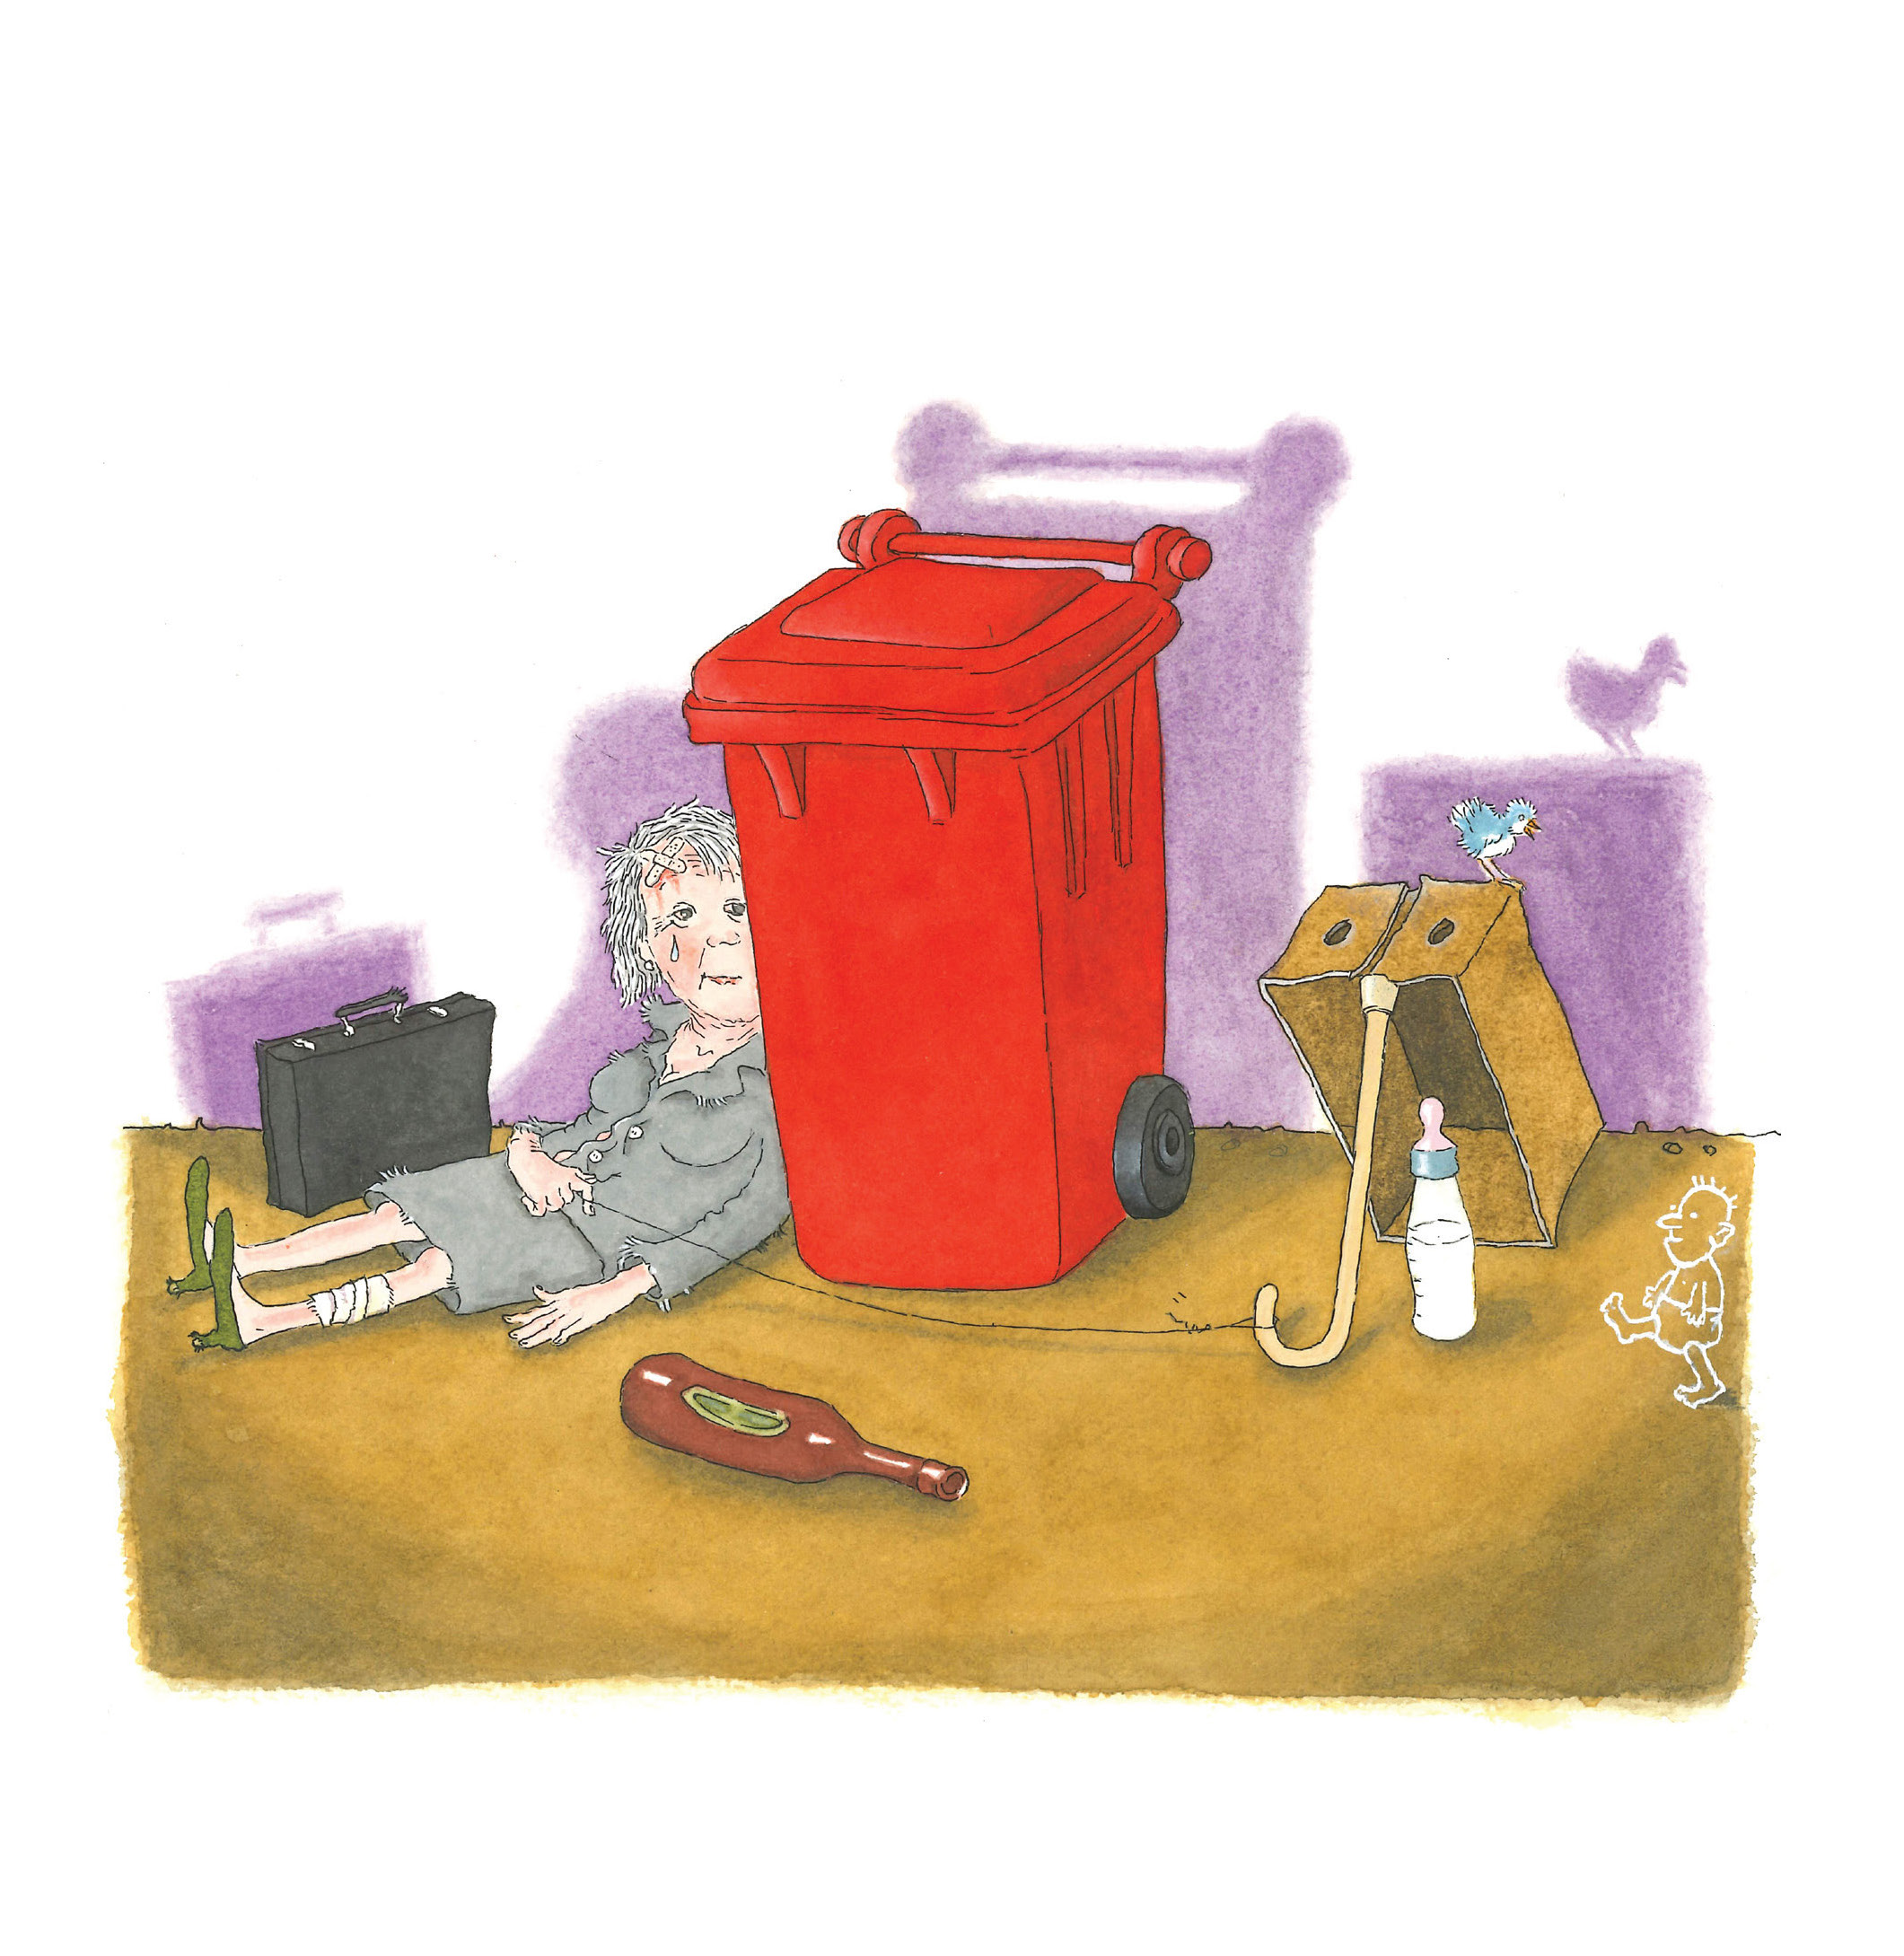 Illustration of a woman hiding behind a garbage bin, ready to pull a piece of string that will set off a trap set for a baby